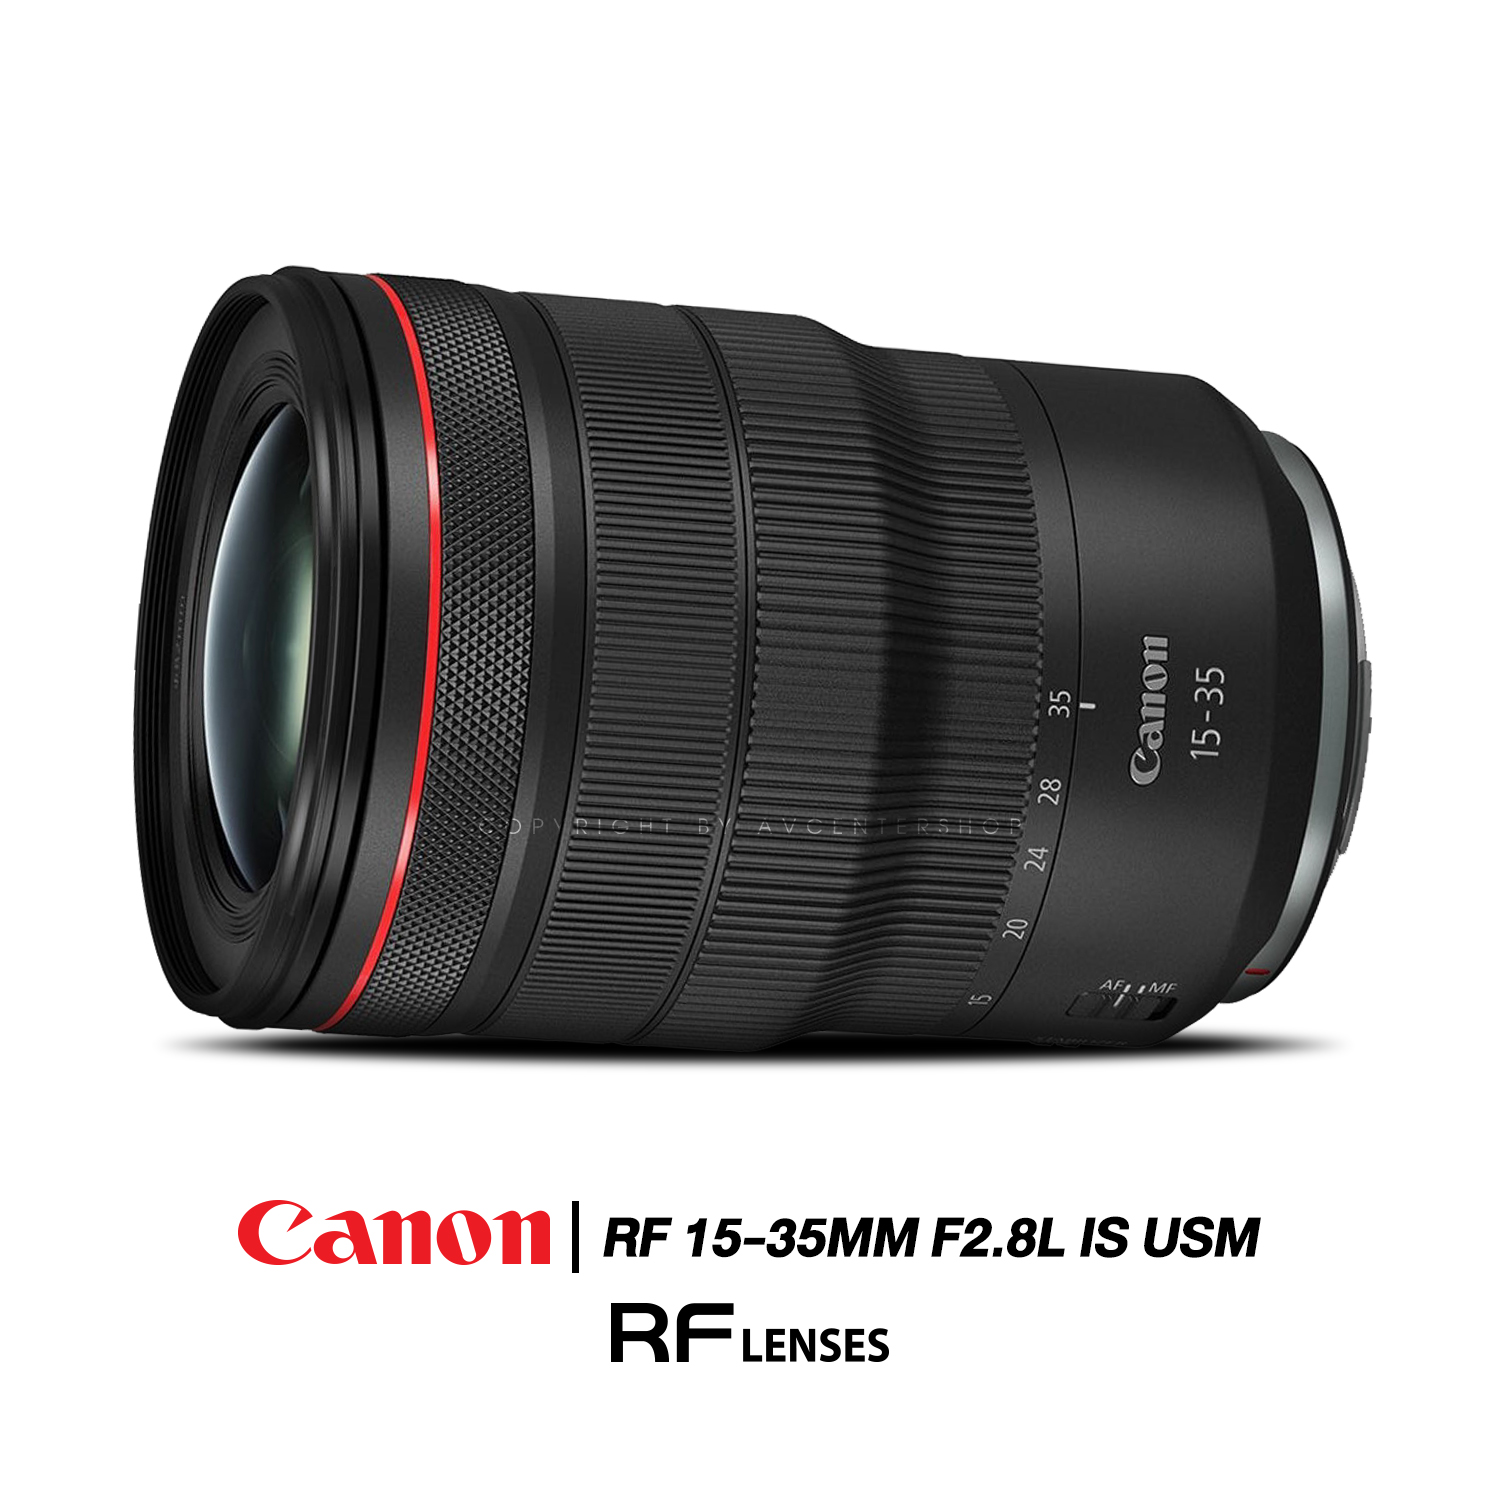 Canon Lens RF 15-35 mm. F2.8L IS USM